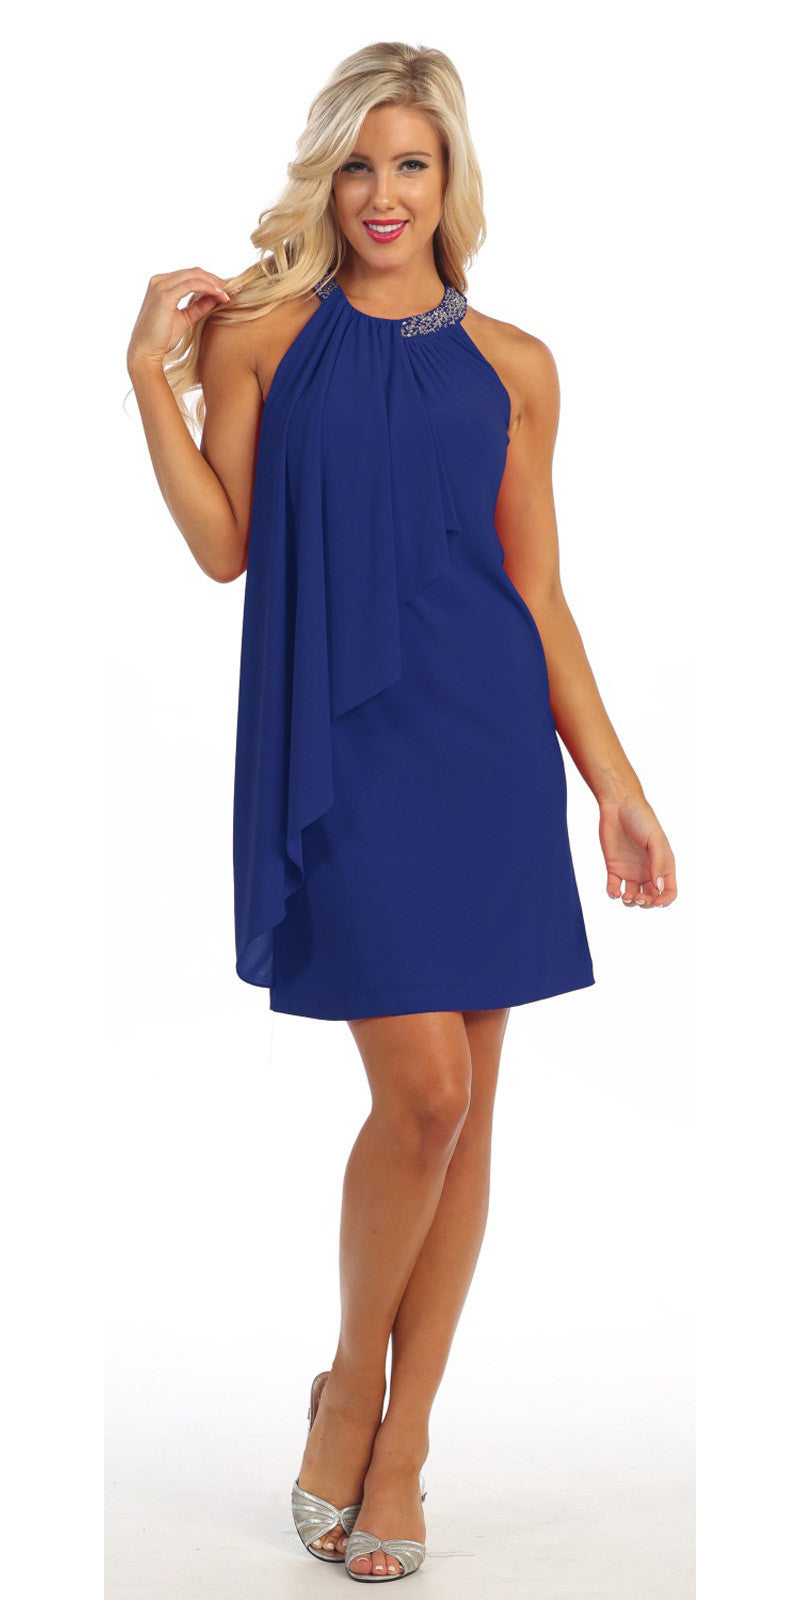 Halter Cocktail Dress Royal Blue Short Rhinestone Neckline Draped